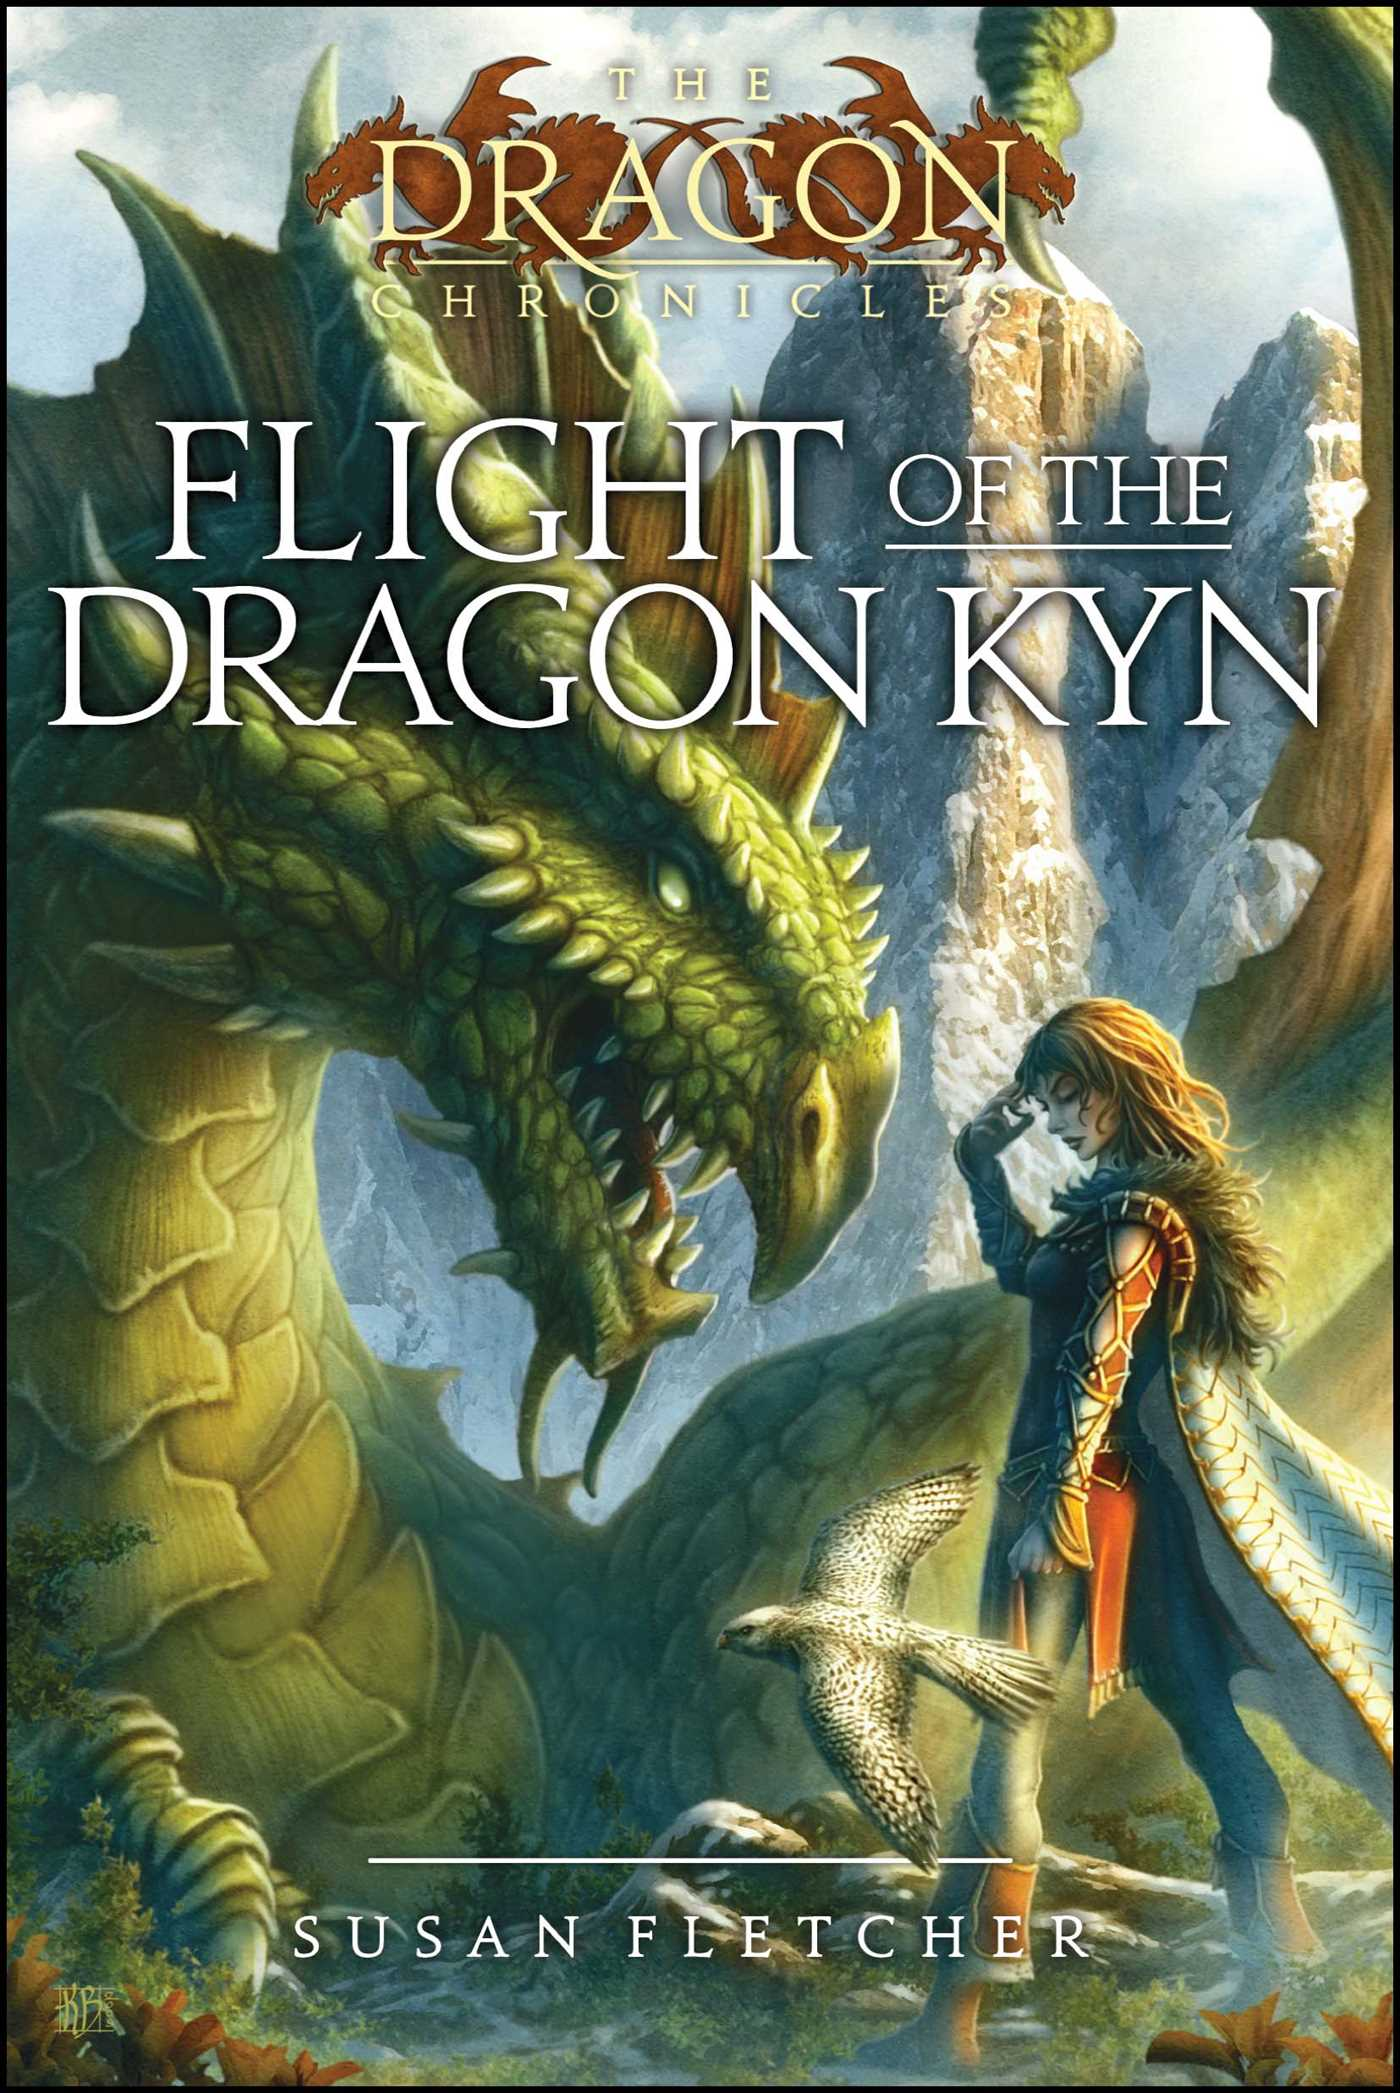 Flight-of-the-dragon-kyn-9781442407060_hr